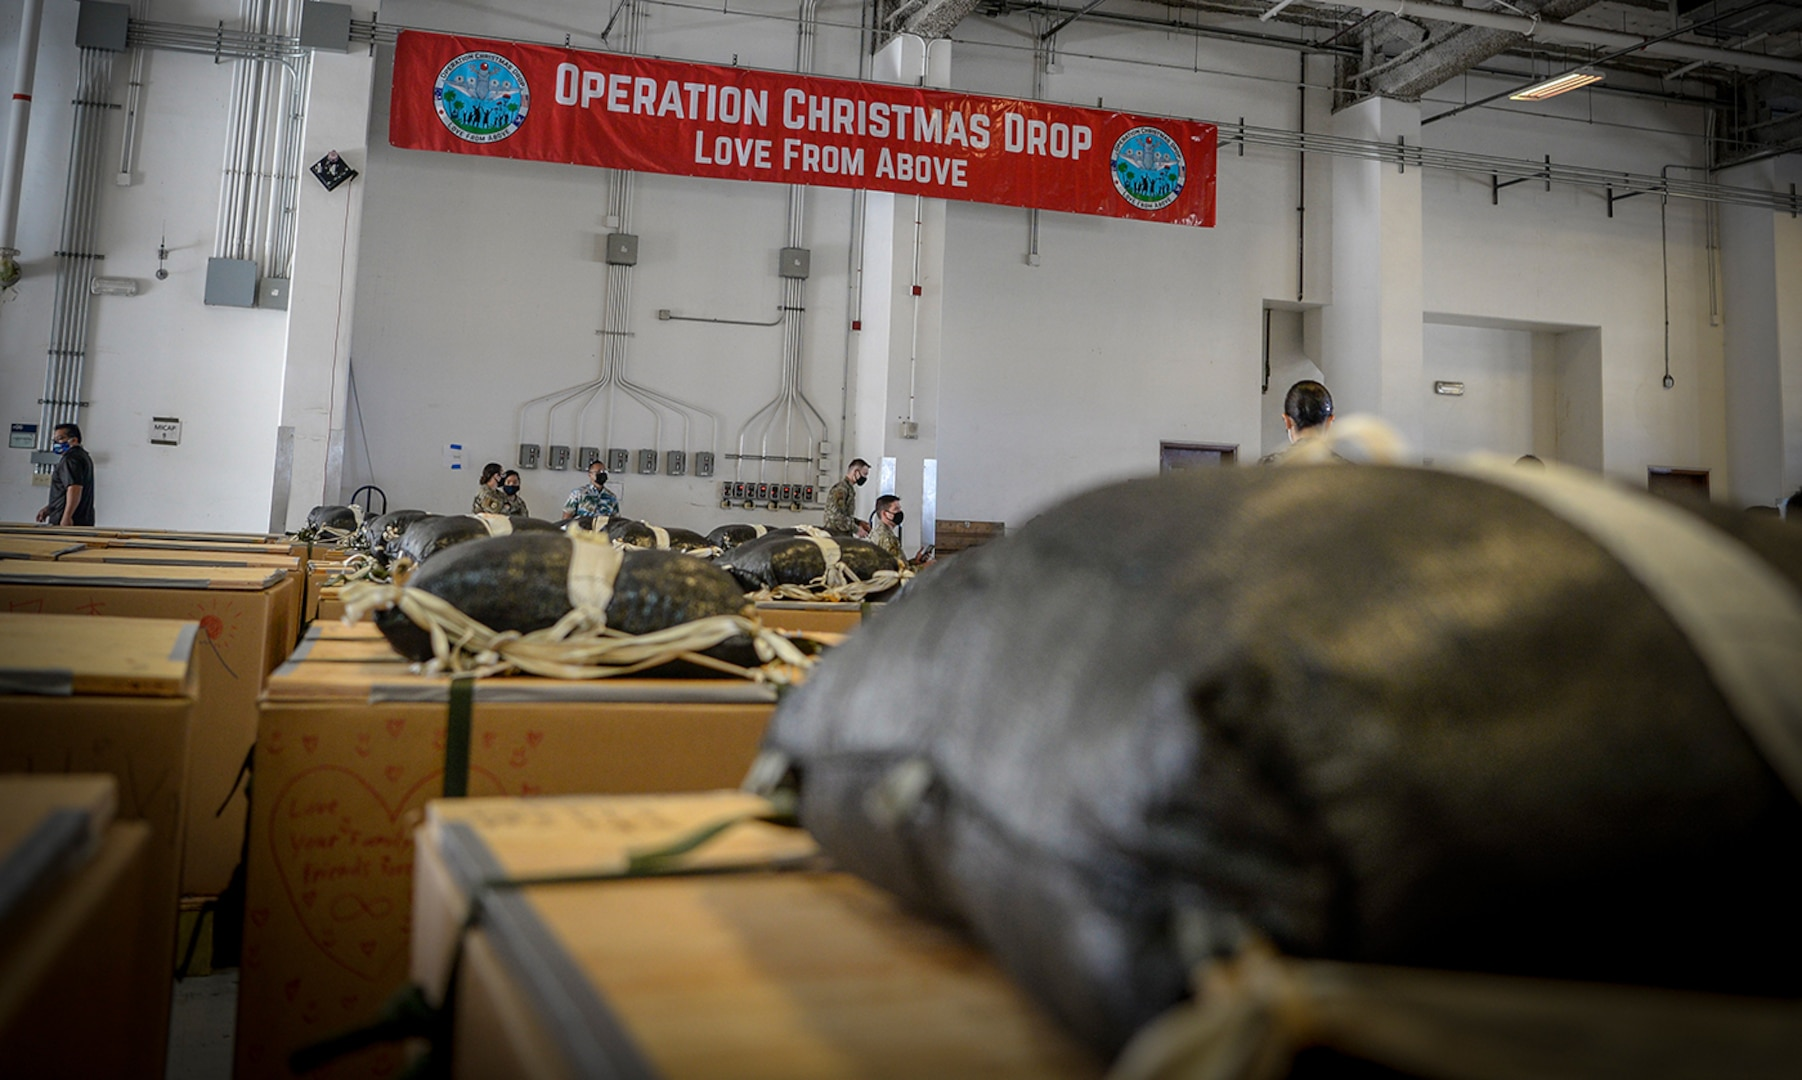 Andersen kicks off 69th Operation Christmas Drop with Push Ceremony